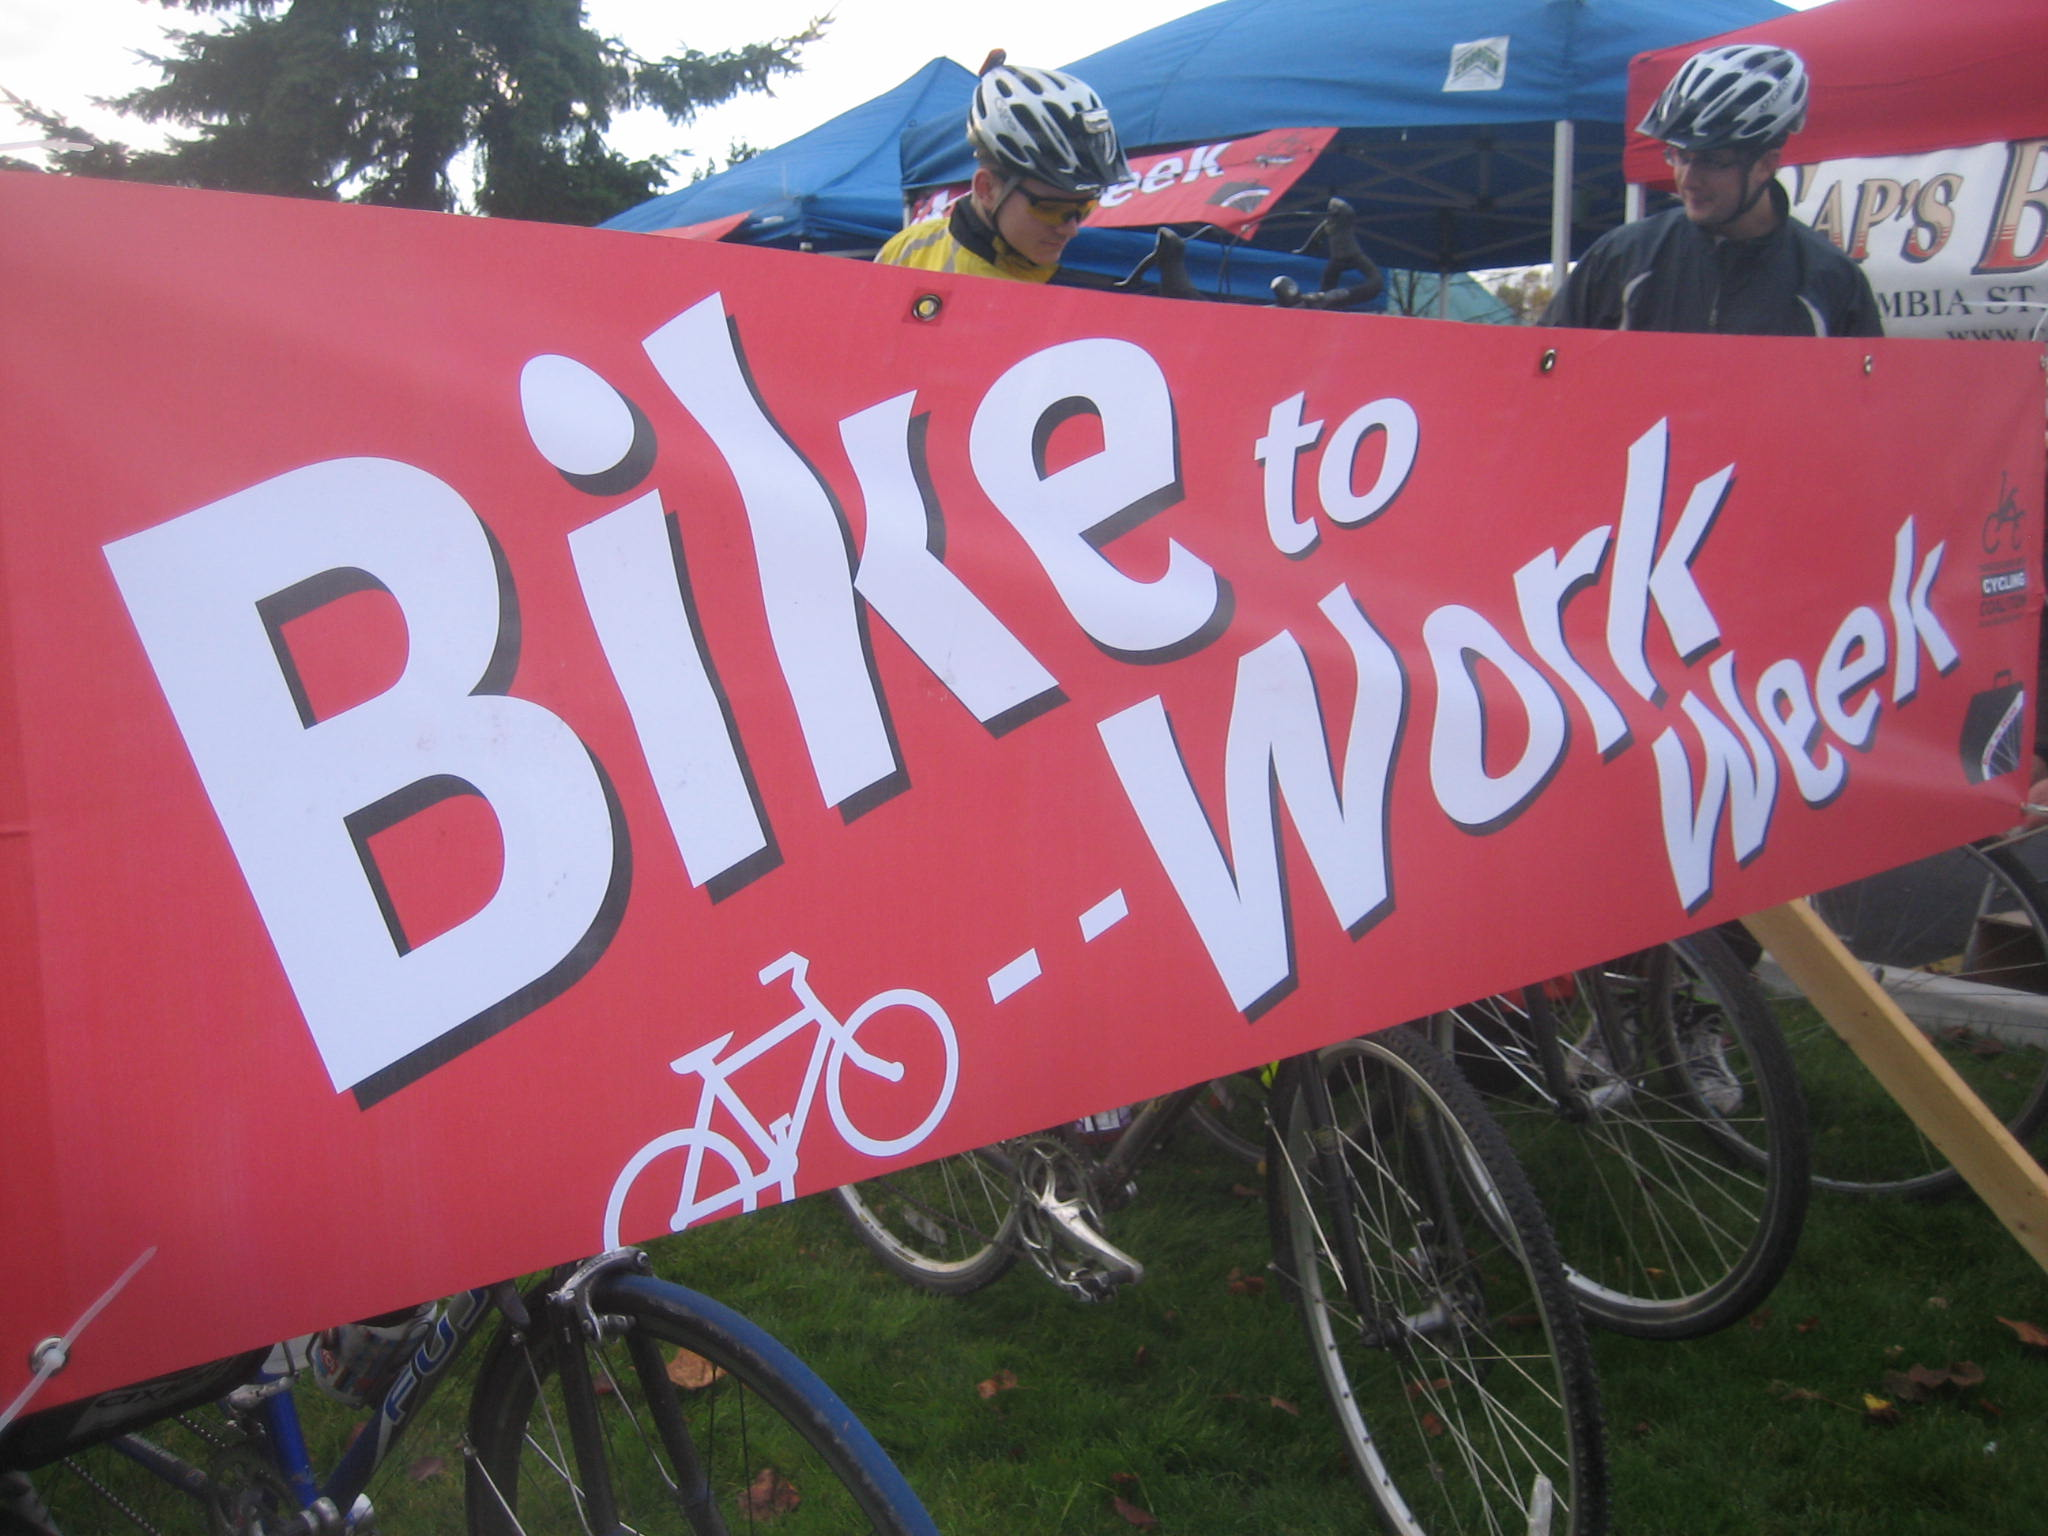 The Bike to Work Week banner at the Gilmore commuter station.